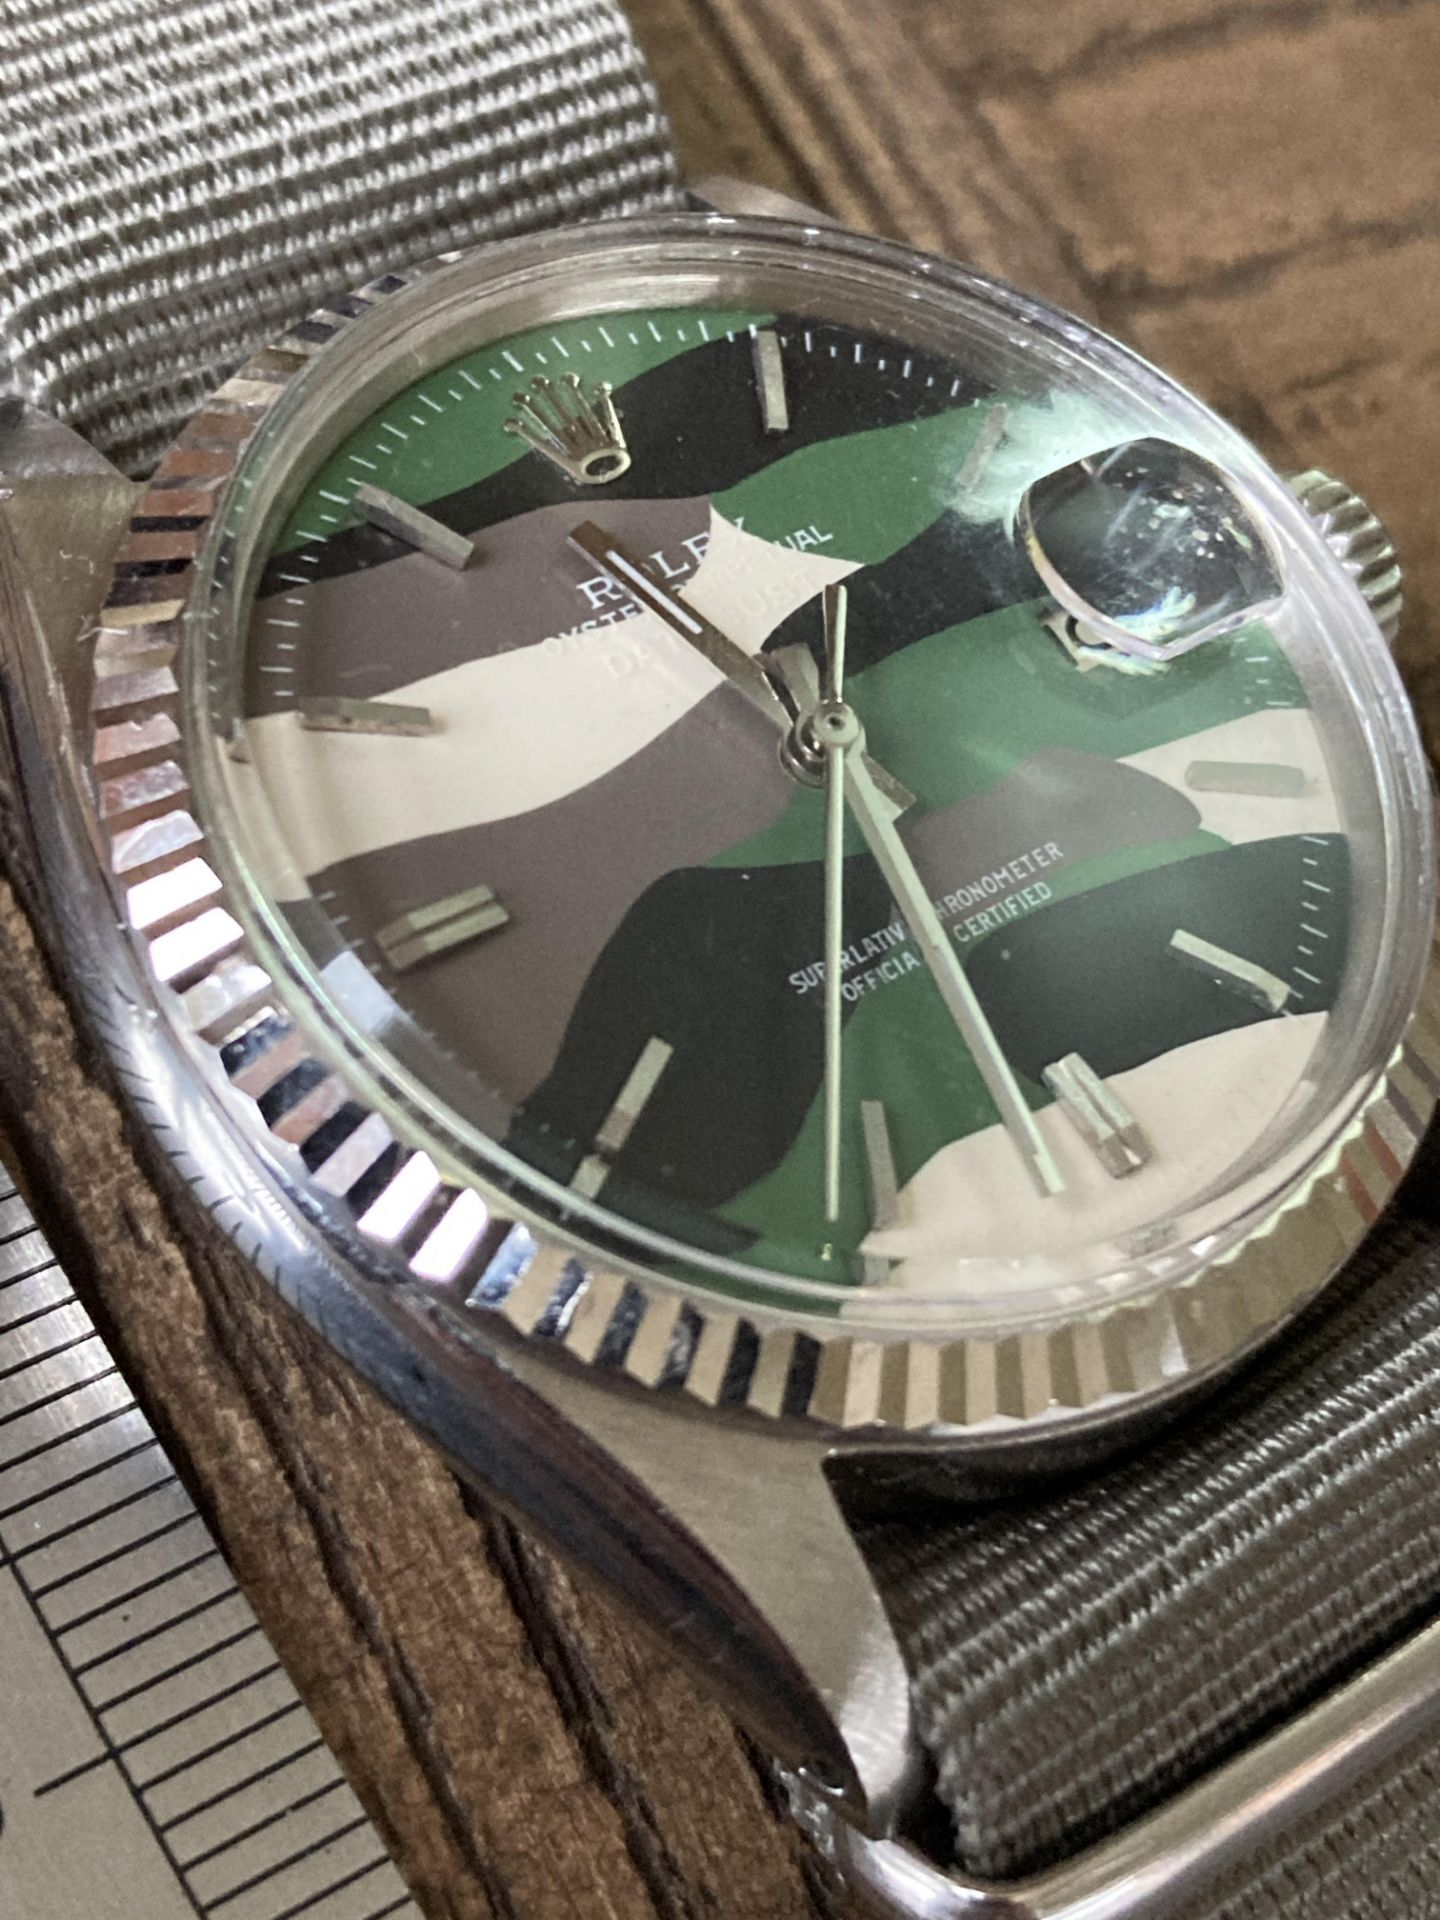 ROLEX DATEJUST 1601 - FLUTED BEZEL, CAMO DIAL - Image 2 of 5